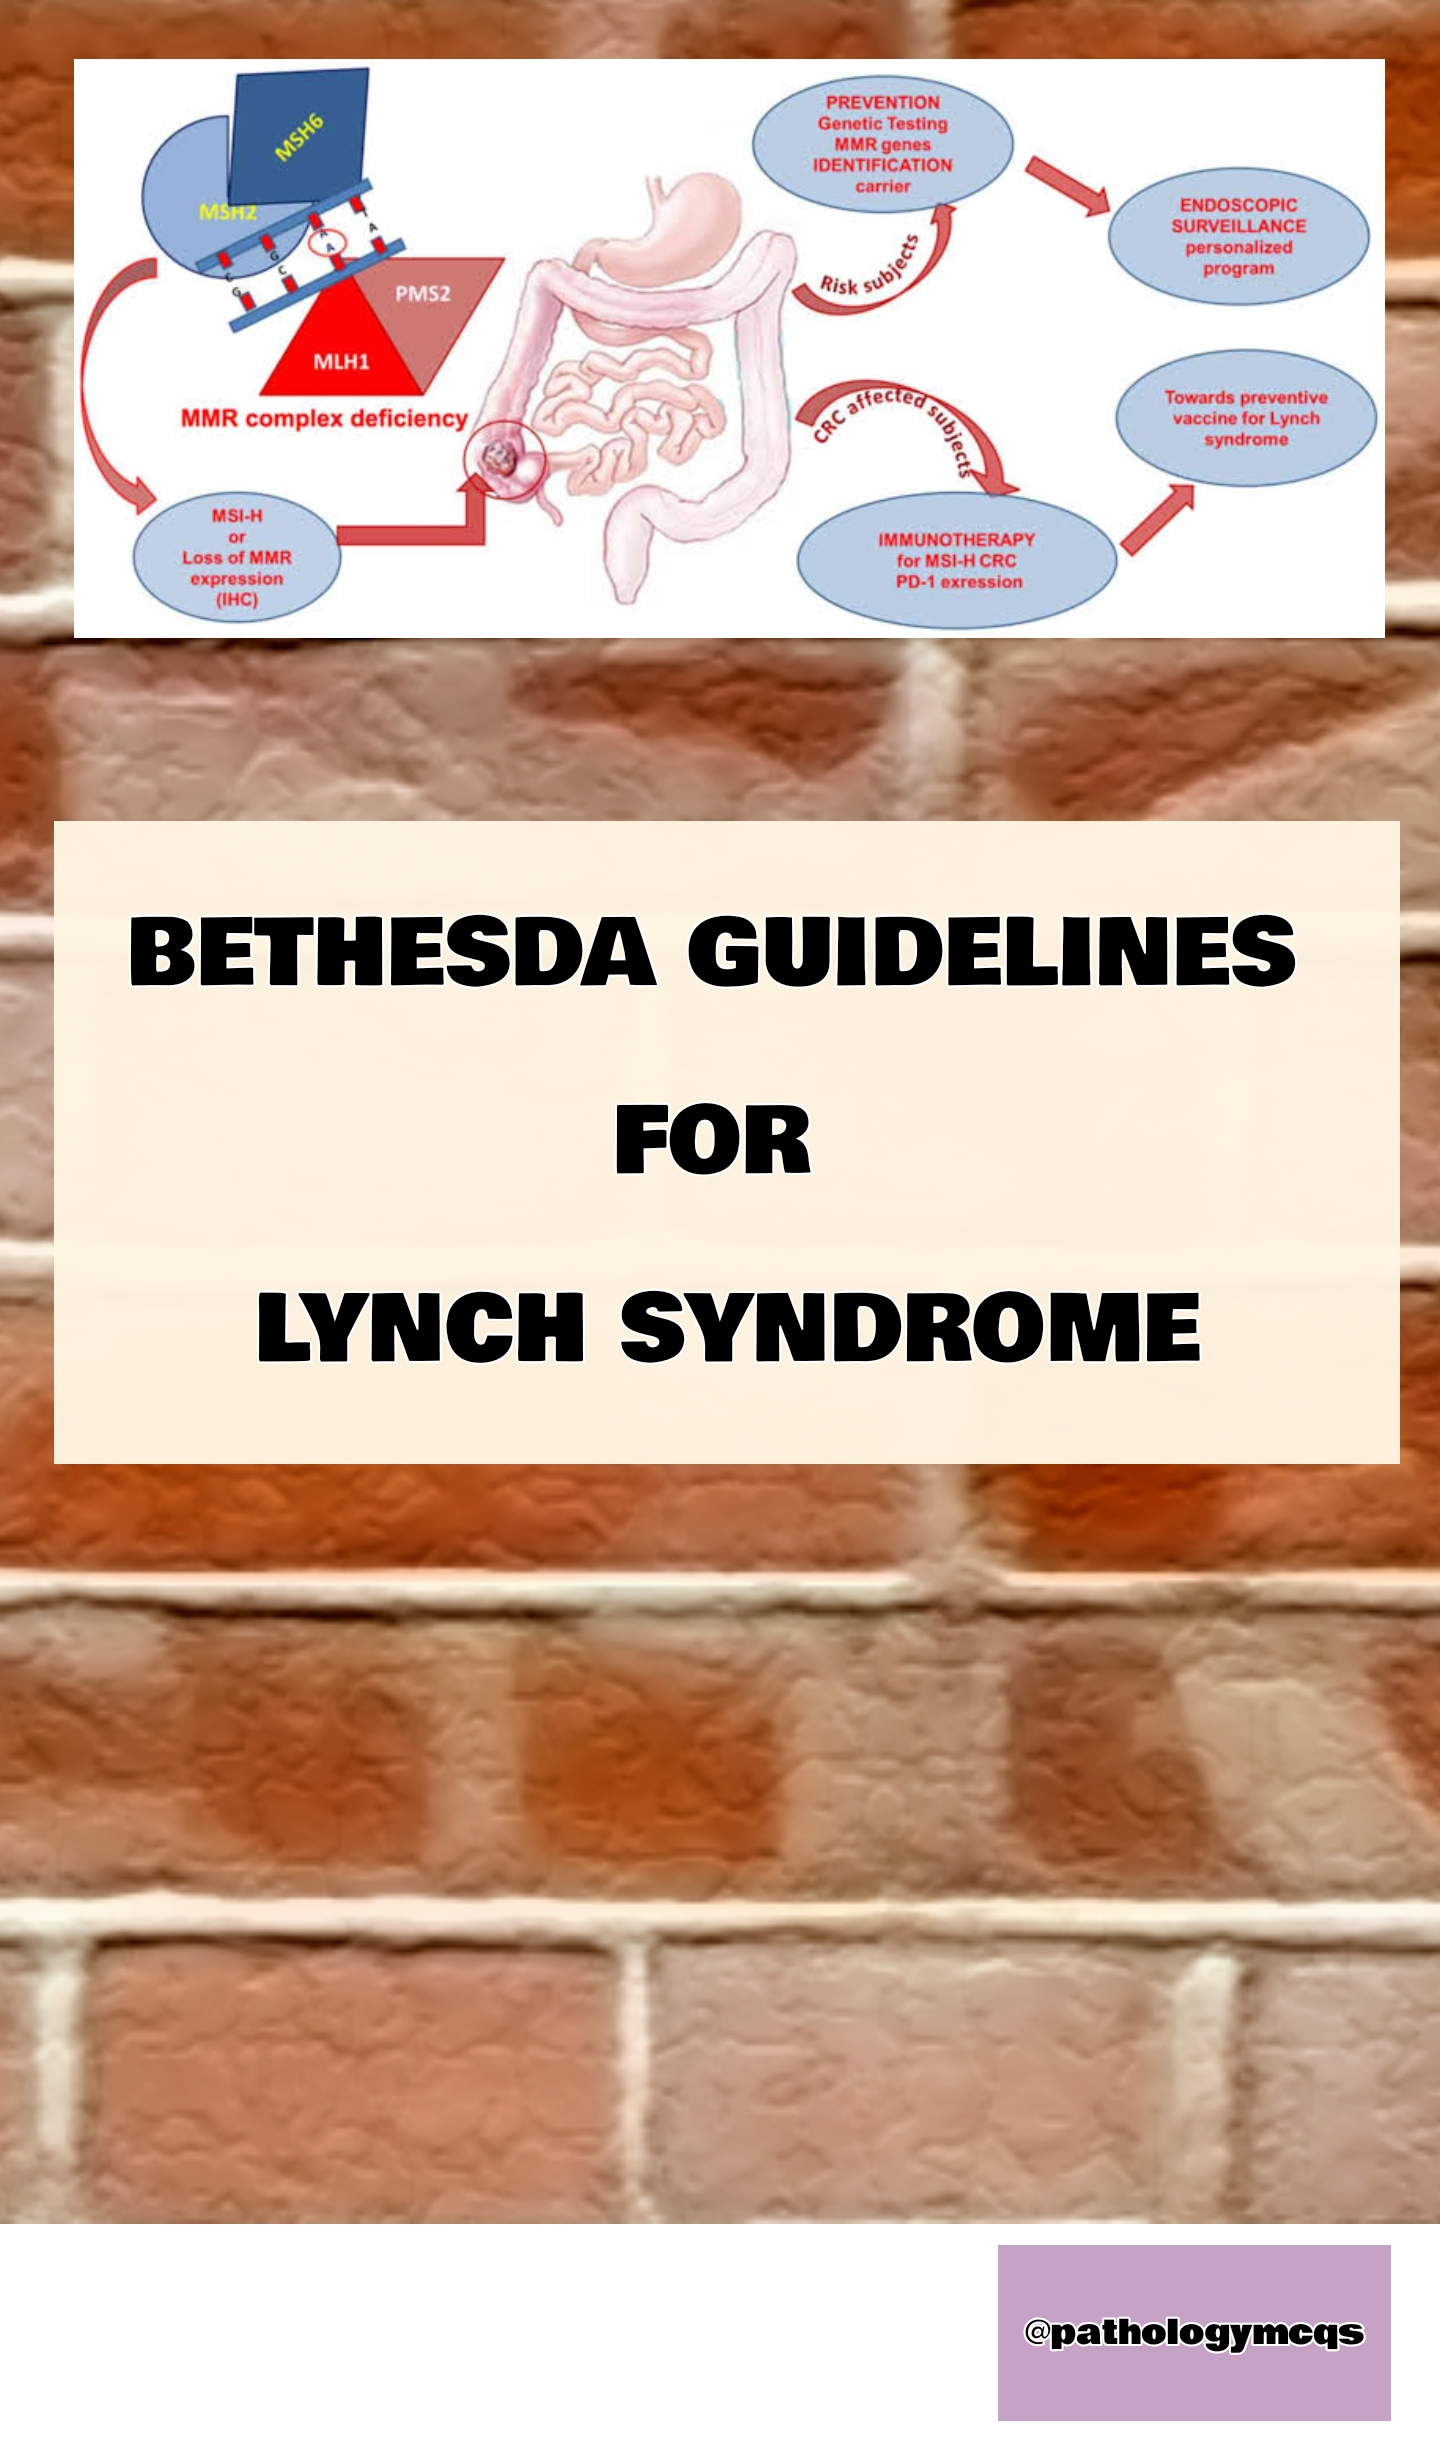 Bethesda guidelines to diagnose Lynch syndrome